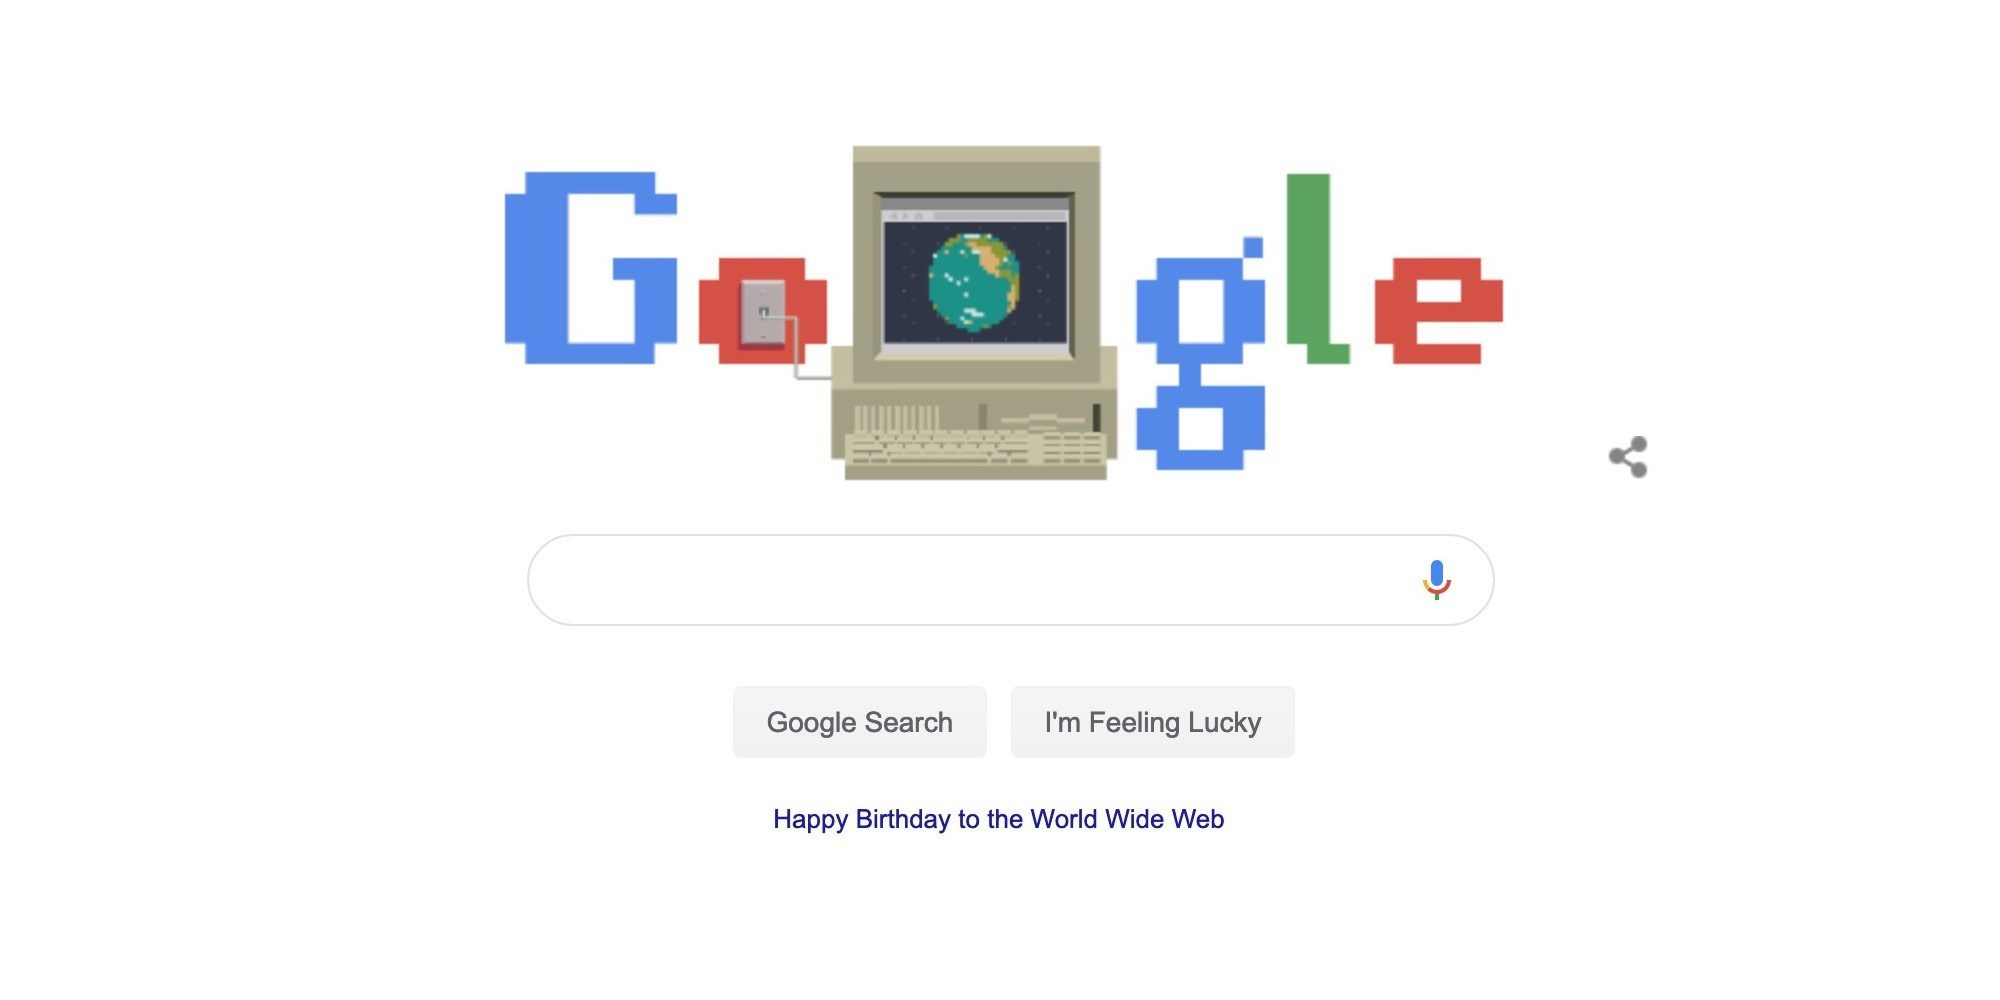 Google Doodle Celebrates the World Wide Web 30th Anniversary